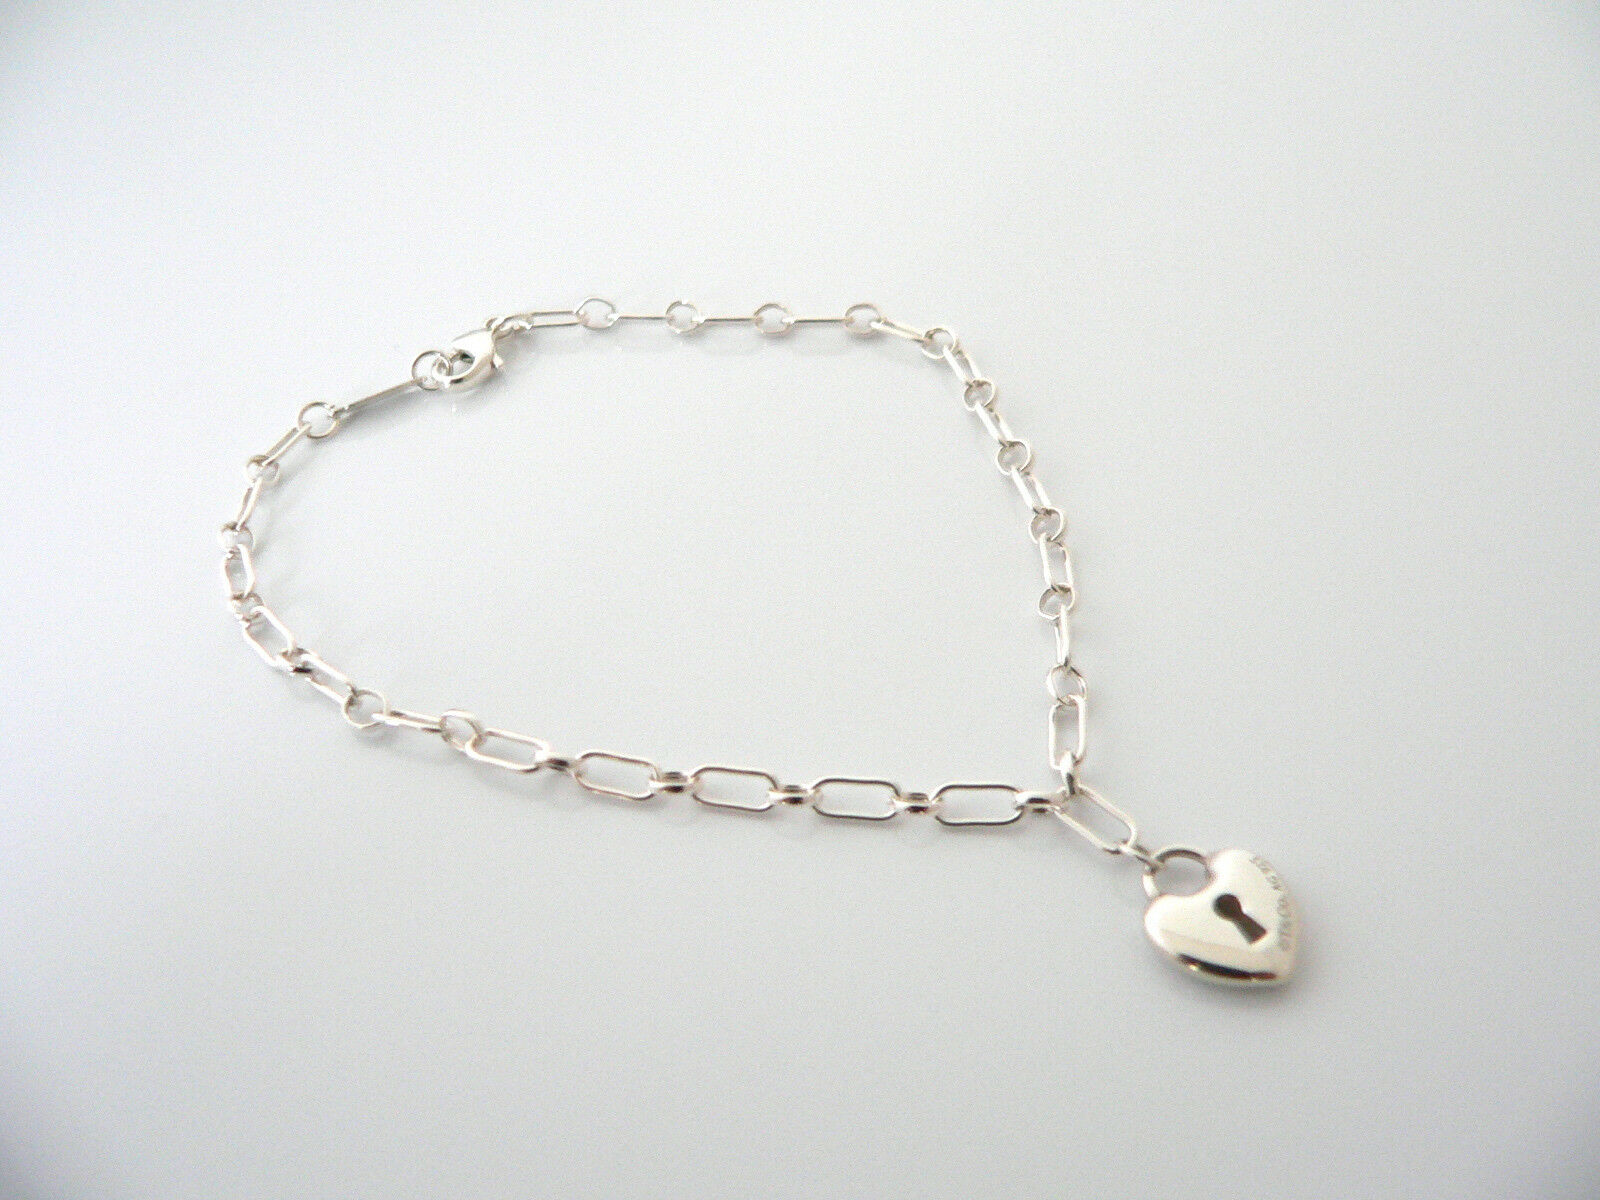 Tiffany & Co Silver Heart Key Hole Locks Bracelet Bangle Link 7.75 Inches Gift